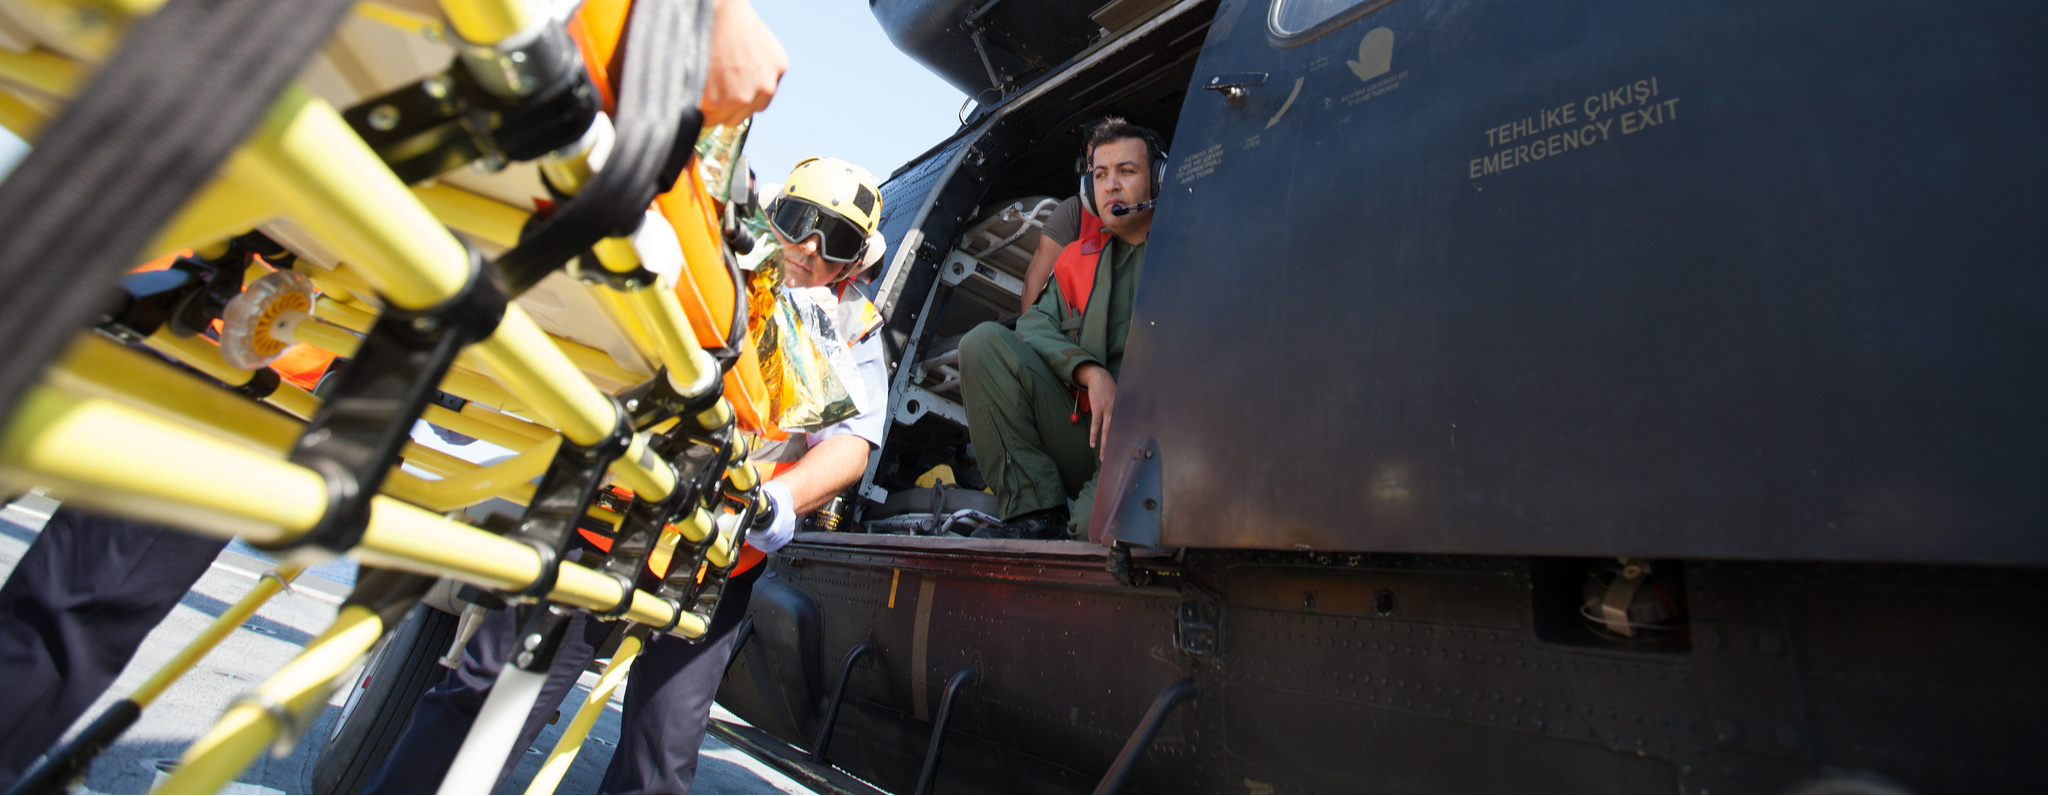 A Cougar Helicopter landing on the helicopter deck of Almedar Ship to evacuate a injured to Marmaris Hospital during Dynamic Monarch 17